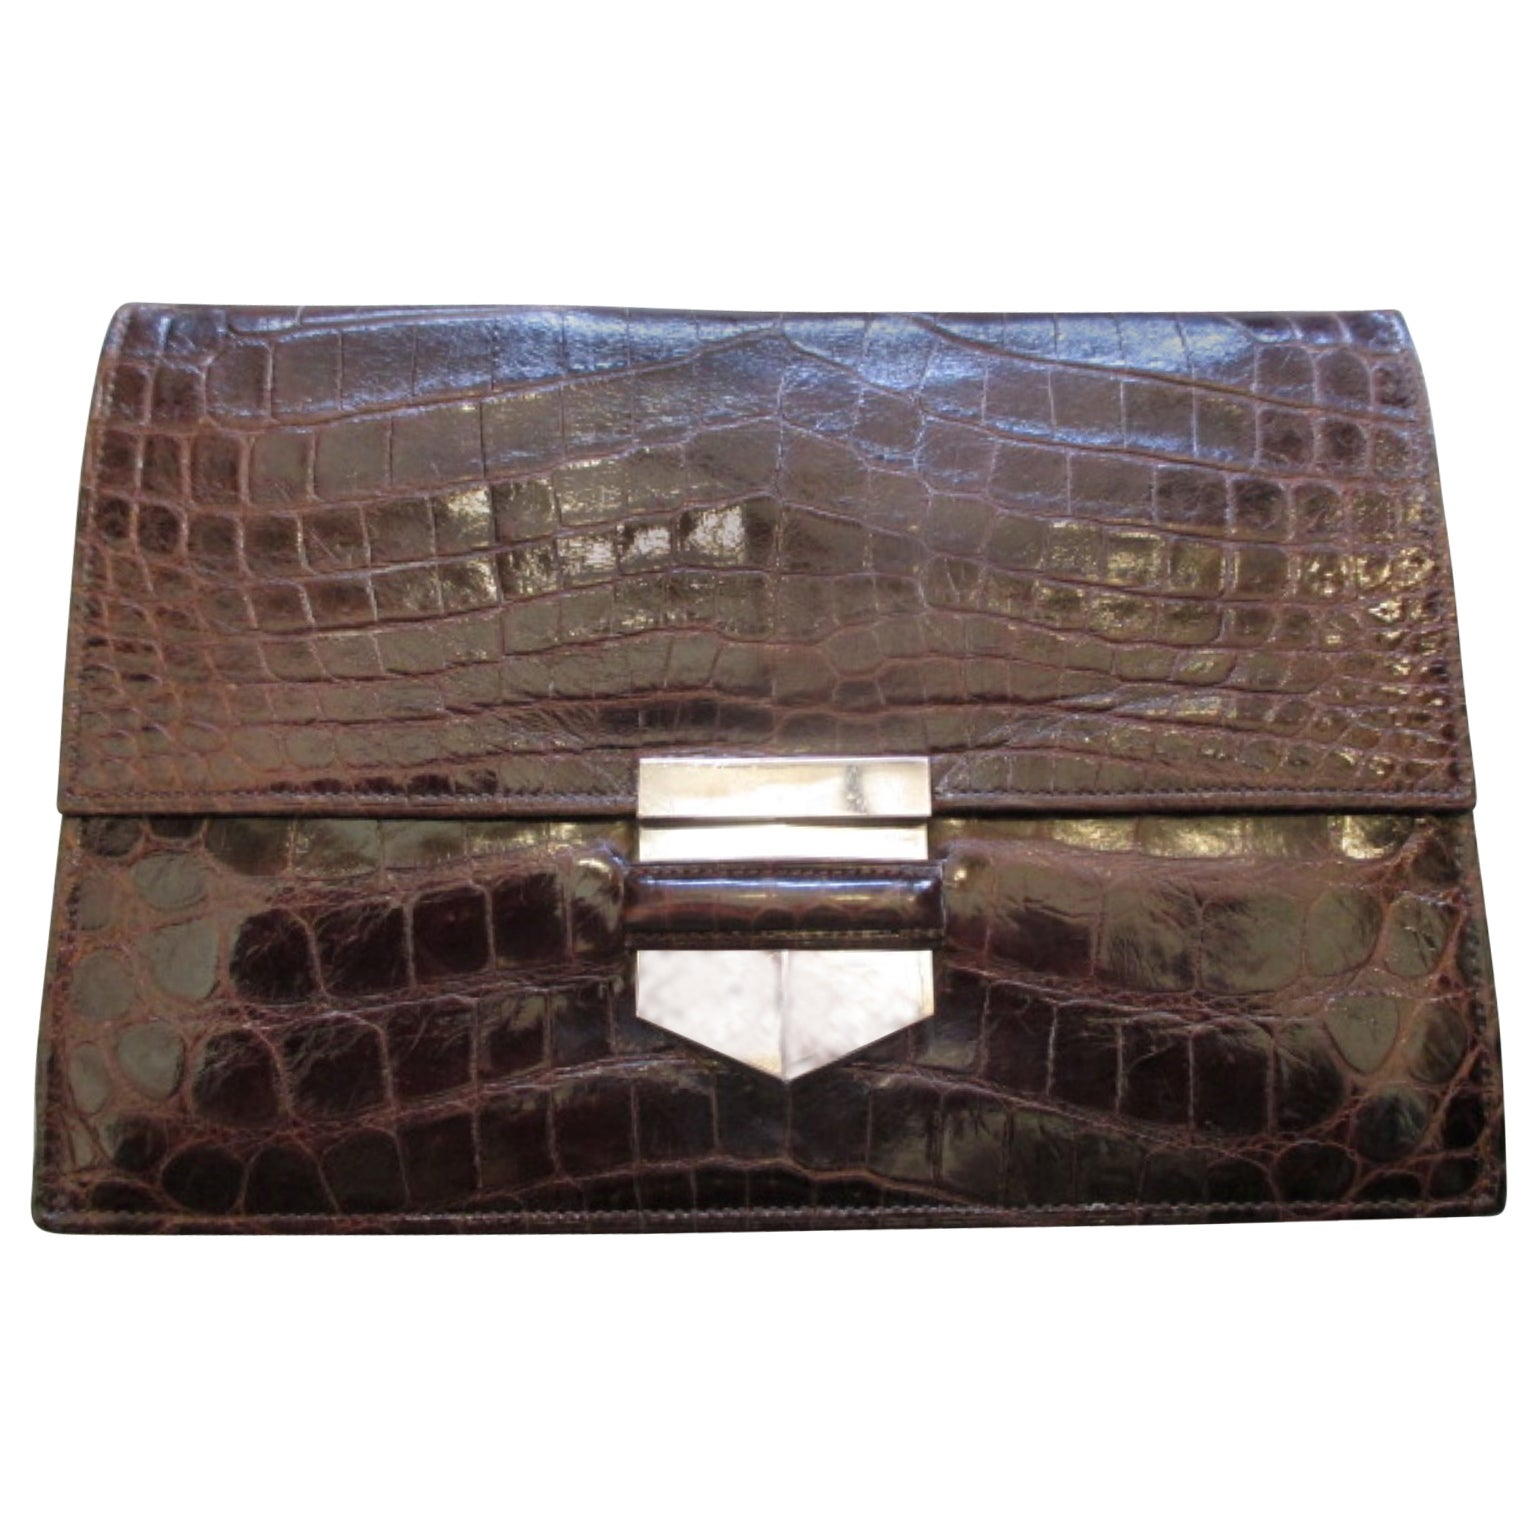 Rare Hermes Crocodile Pan Clutch with Sterling Silver Hardware